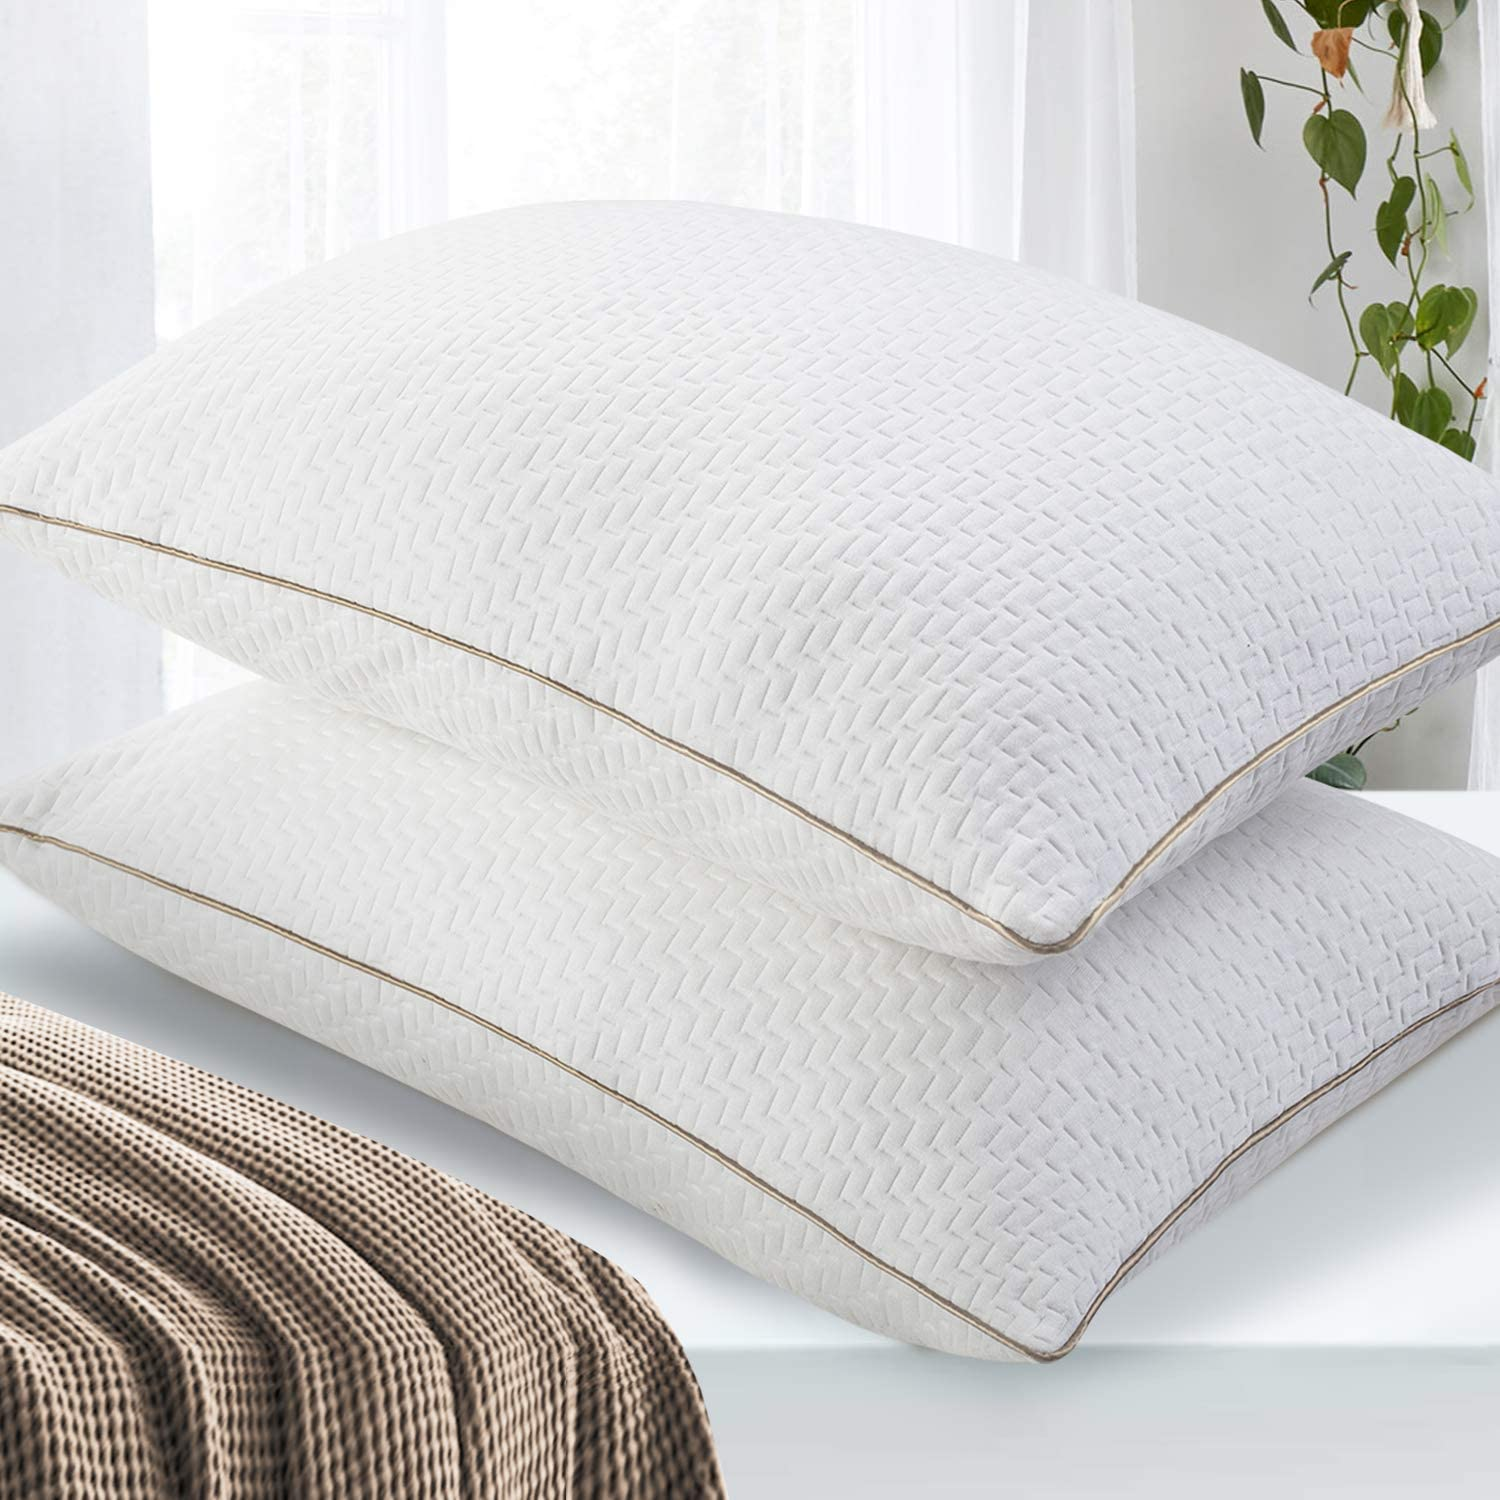 Standard Size Bed Pillows with Bamboo Fiber Cover BedStory Pillows for Sleeping 2 Pack Luxury Down Alternative Pillow Inserts for Side and Back Sleepers Machine Washable /& Hotel Quality